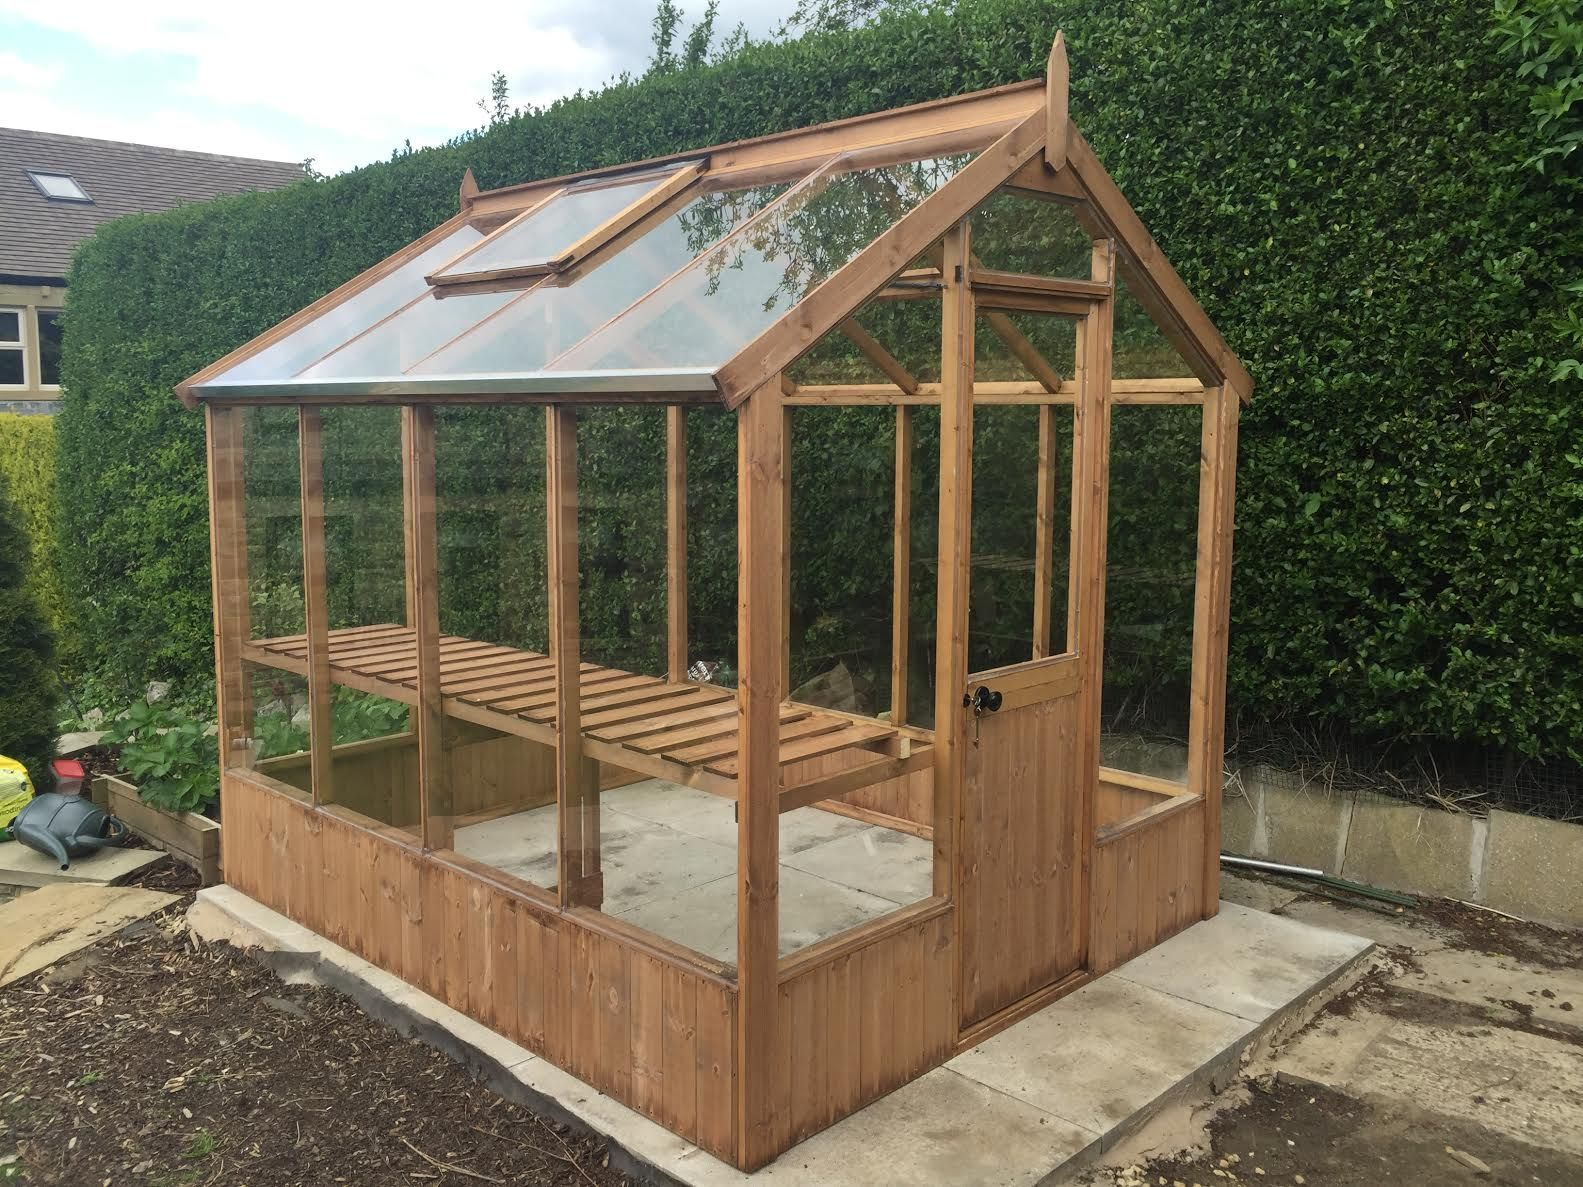 Cotswold classic 6x6 wooden greenhouse wooden for Greenhouse design plans